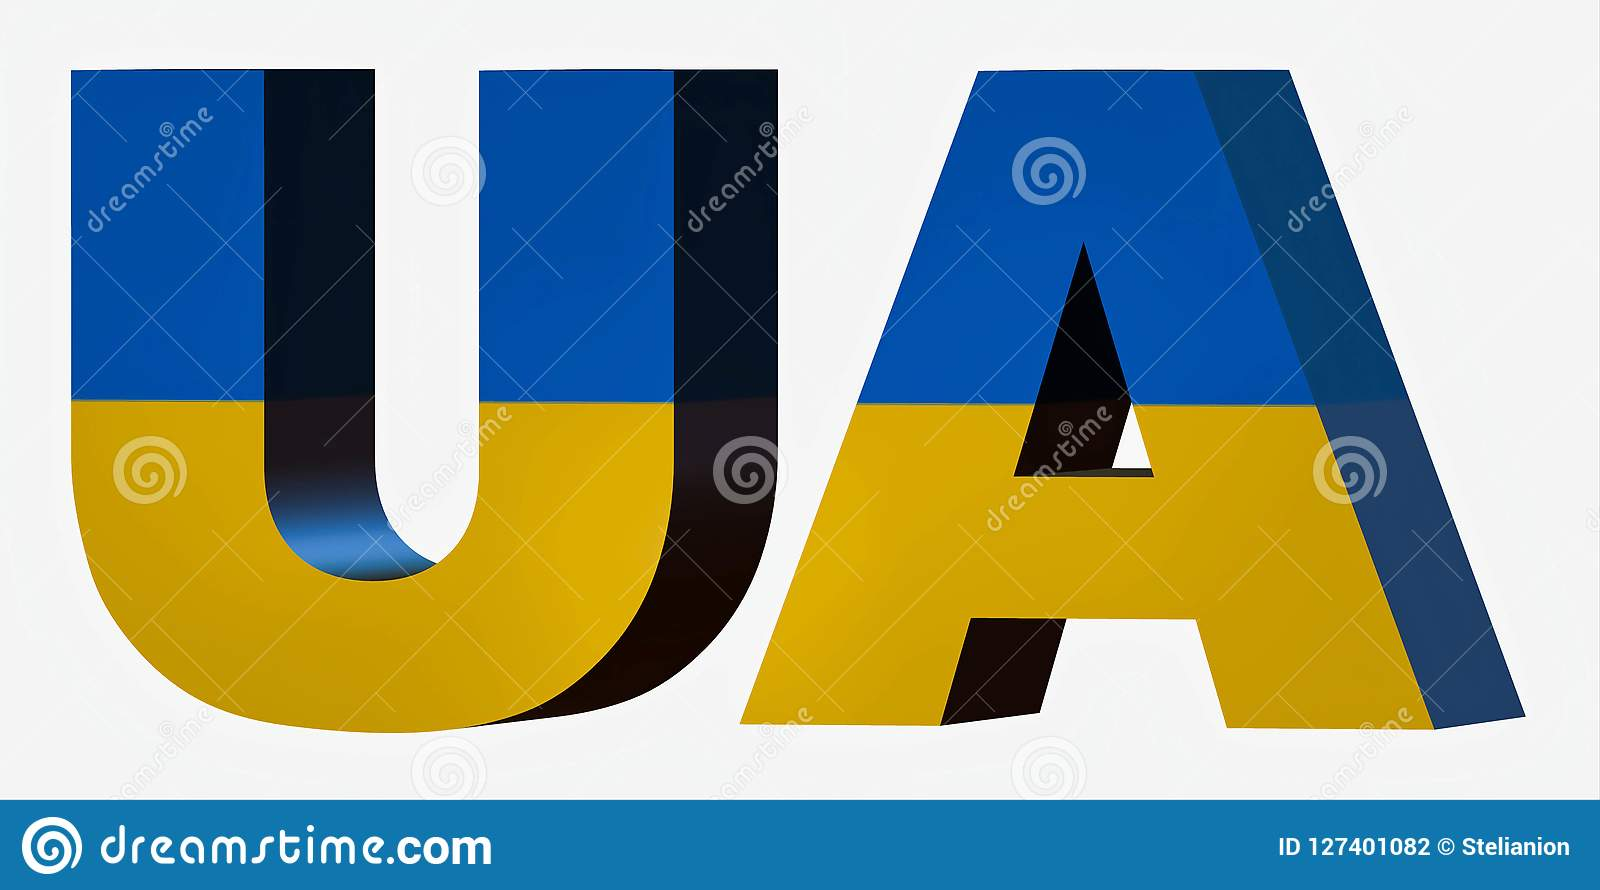 what is the country code of ukraine